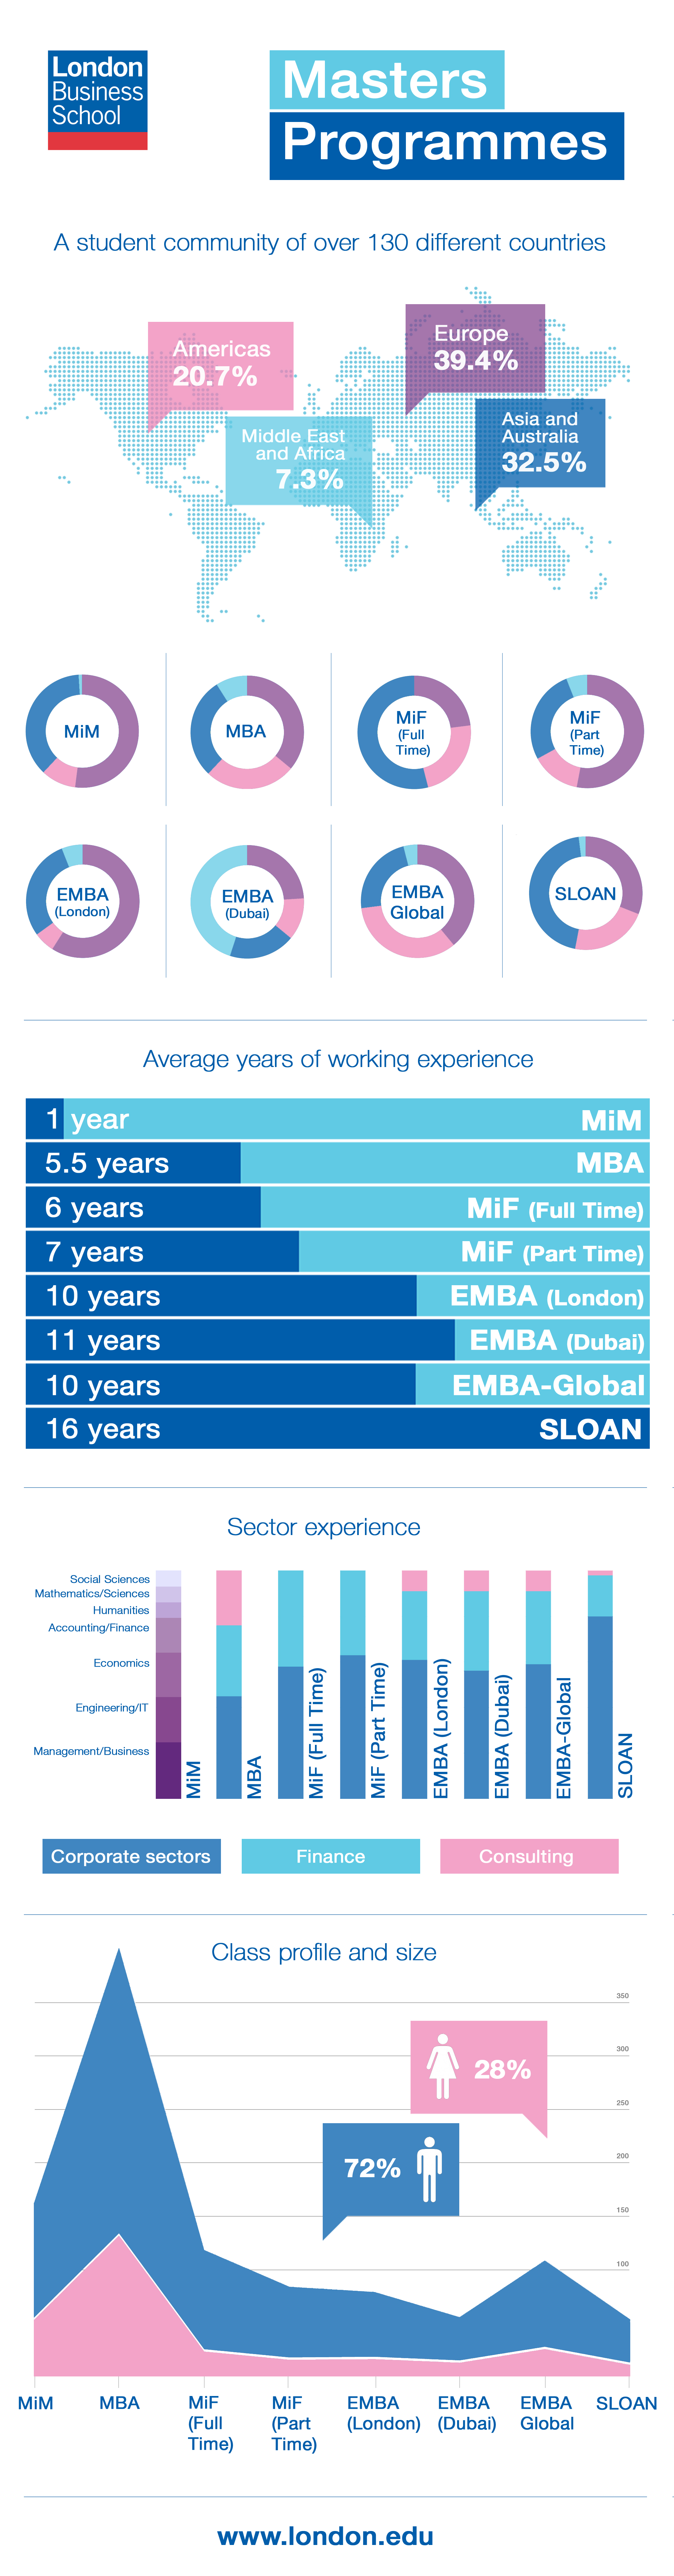 Infographic Lbs Masters Programmes Masters Programs Masters School Infographic